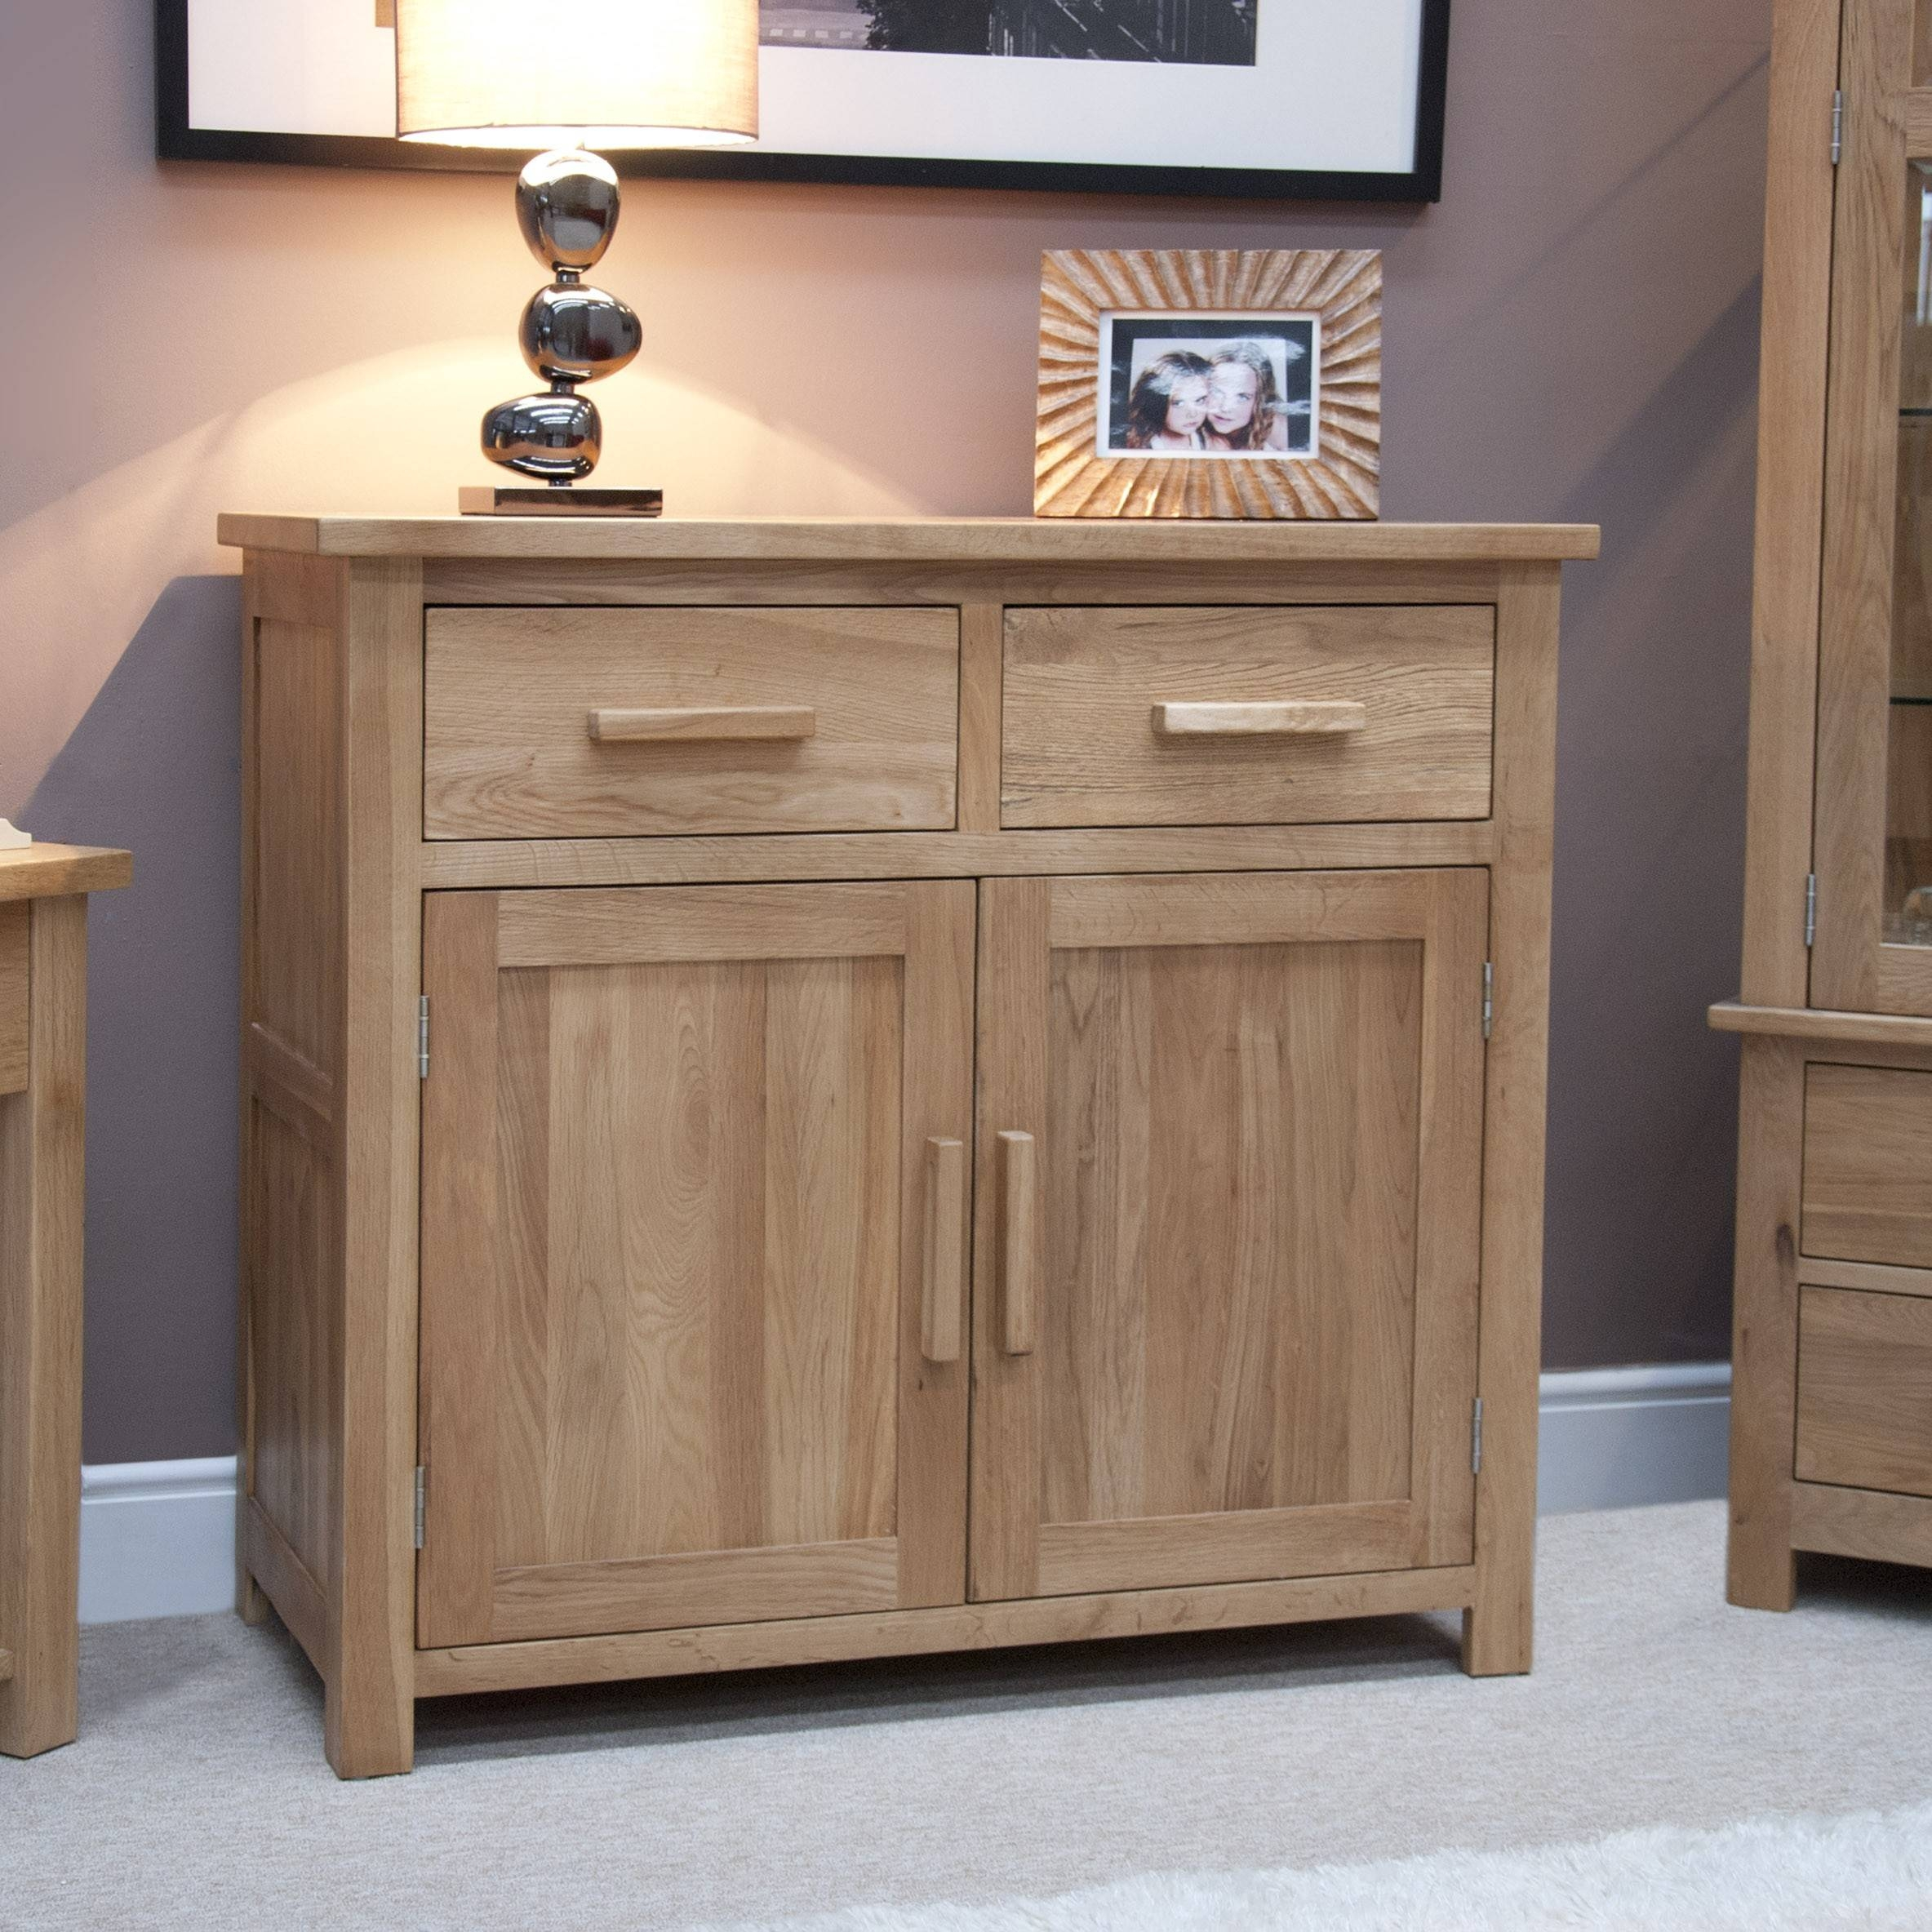 Opus Oak Furniture Small Sideboard | Furniture4Yourhome With Regard To Small Wooden Sideboards (#9 of 15)